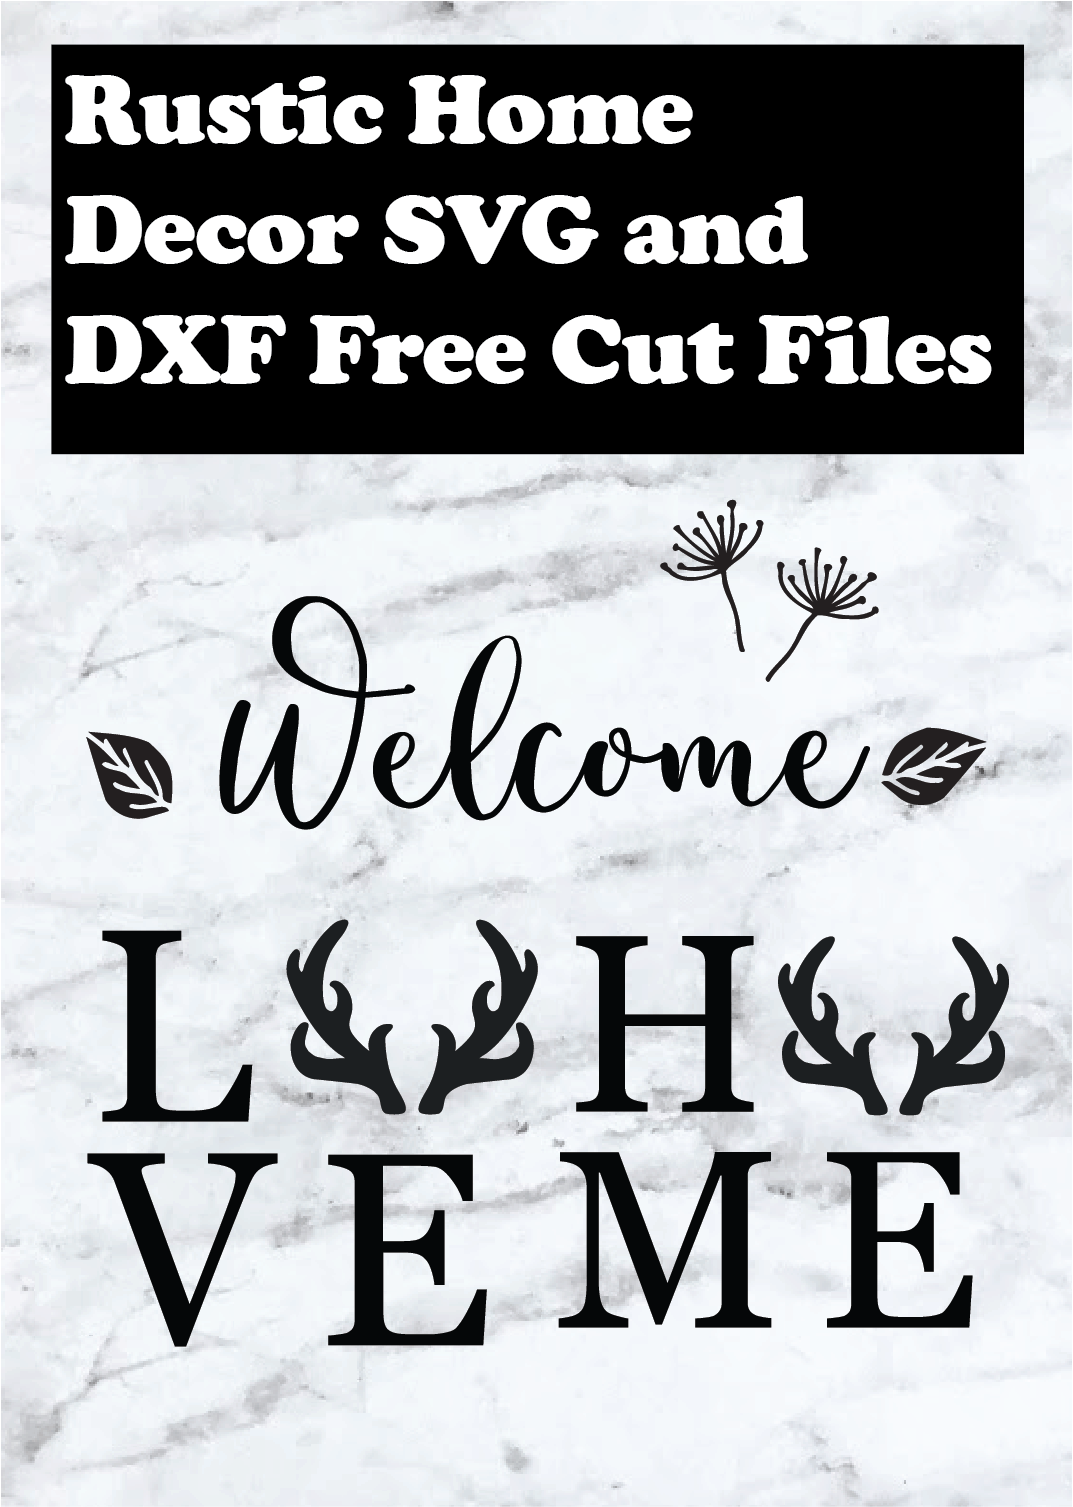 200+ Cricut Projects Free SVGs | Cricut svg files free ...